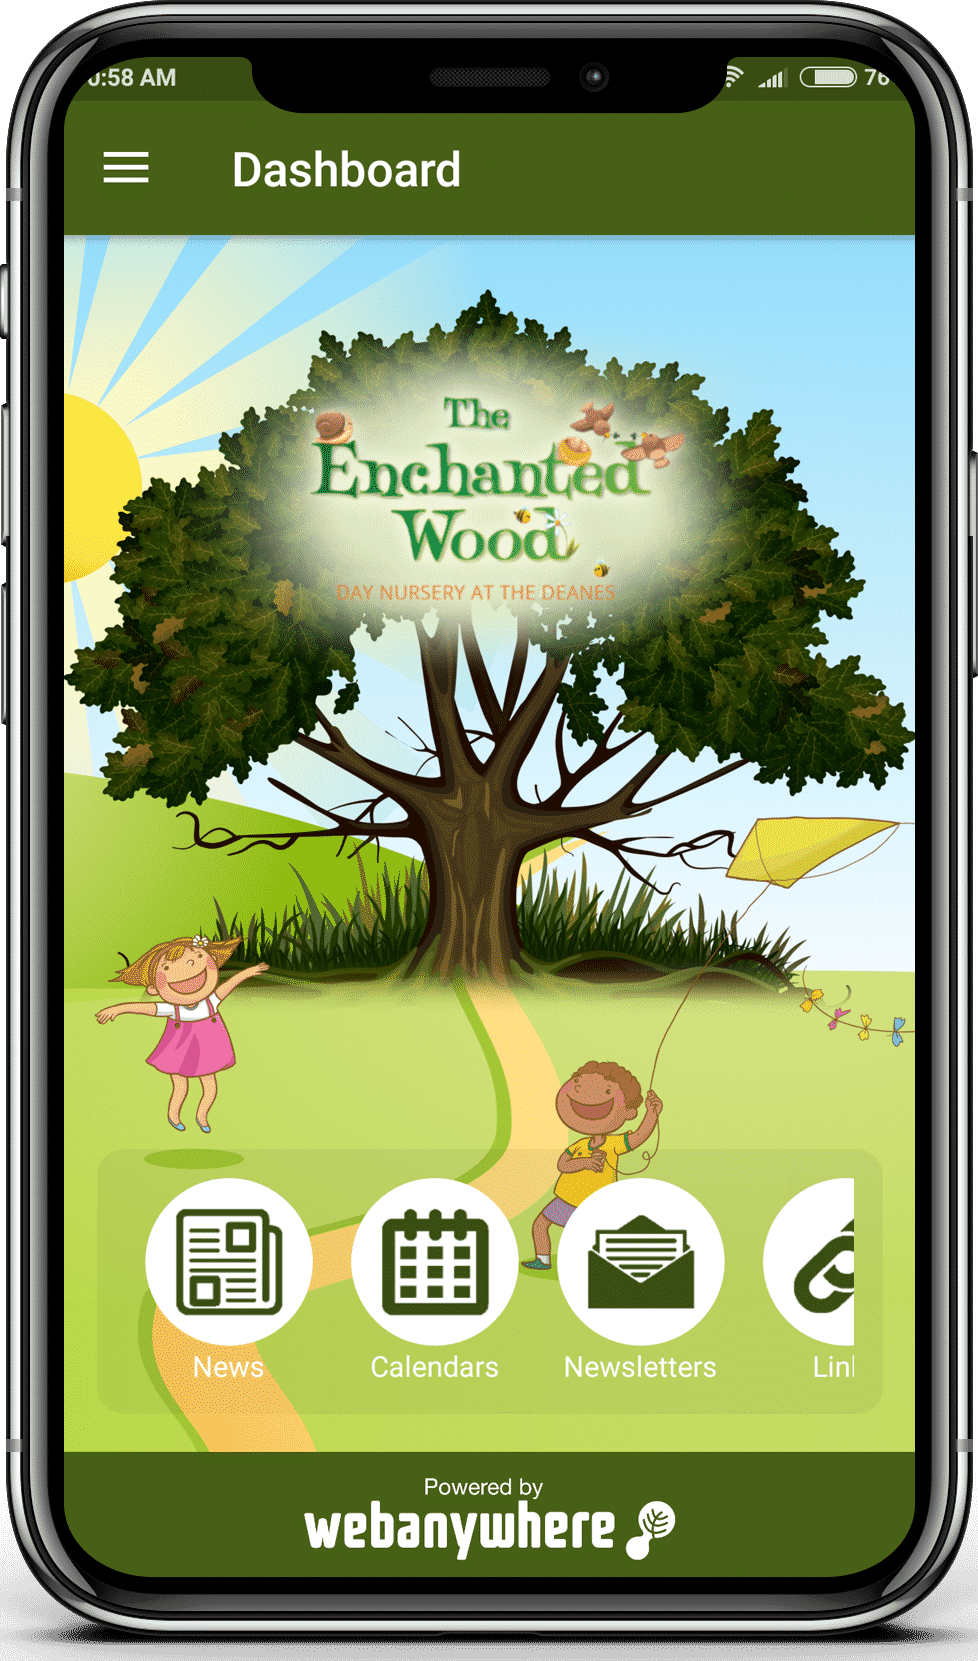 The Enchanted Wood mobile app